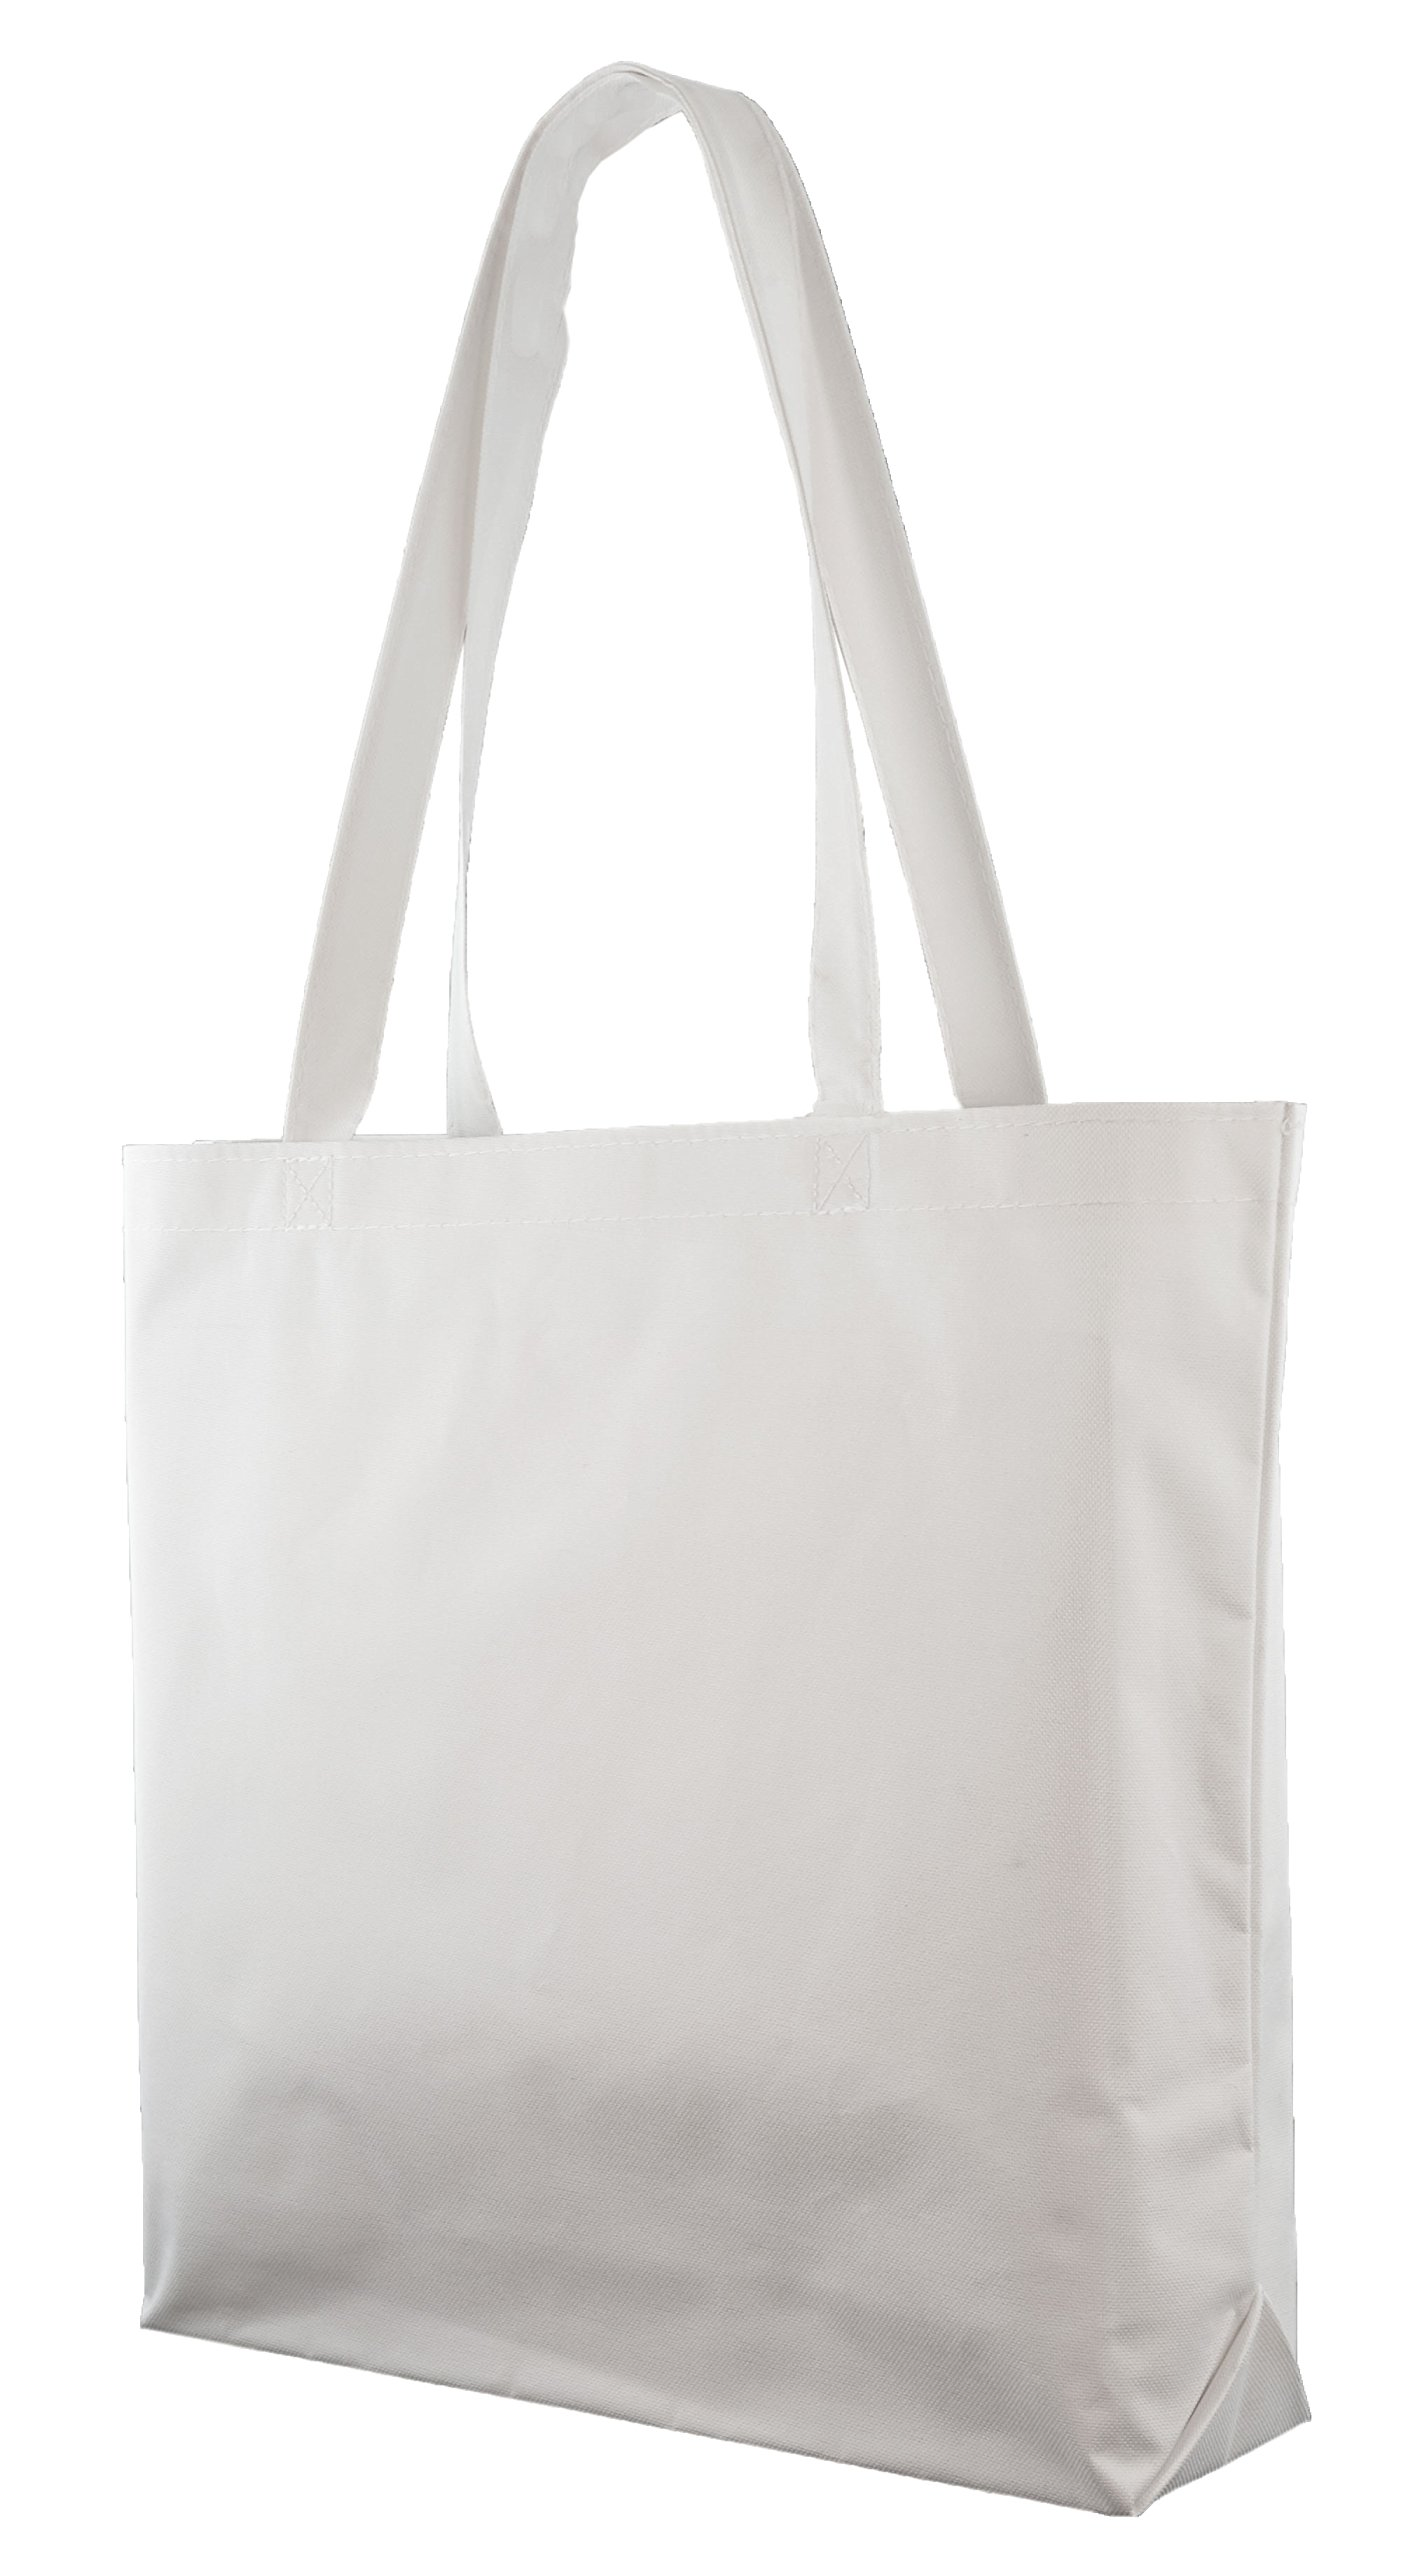 Large Shopping Tote with Shoulder Length Handles (White)